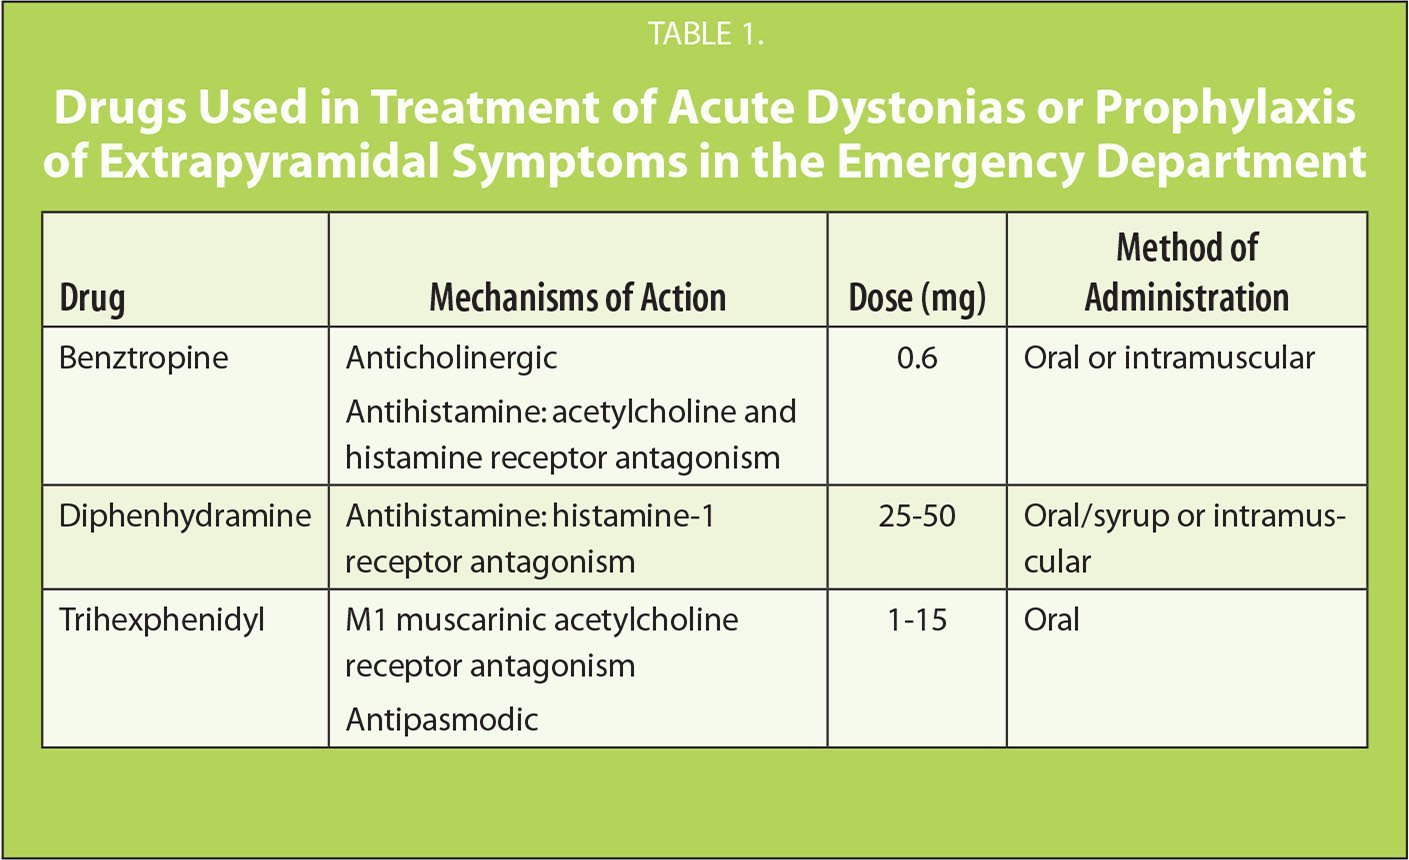 Drugs Used in Treatment of Acute Dystonias or Prophylaxis of Extrapyramidal Symptoms in the Emergency Department